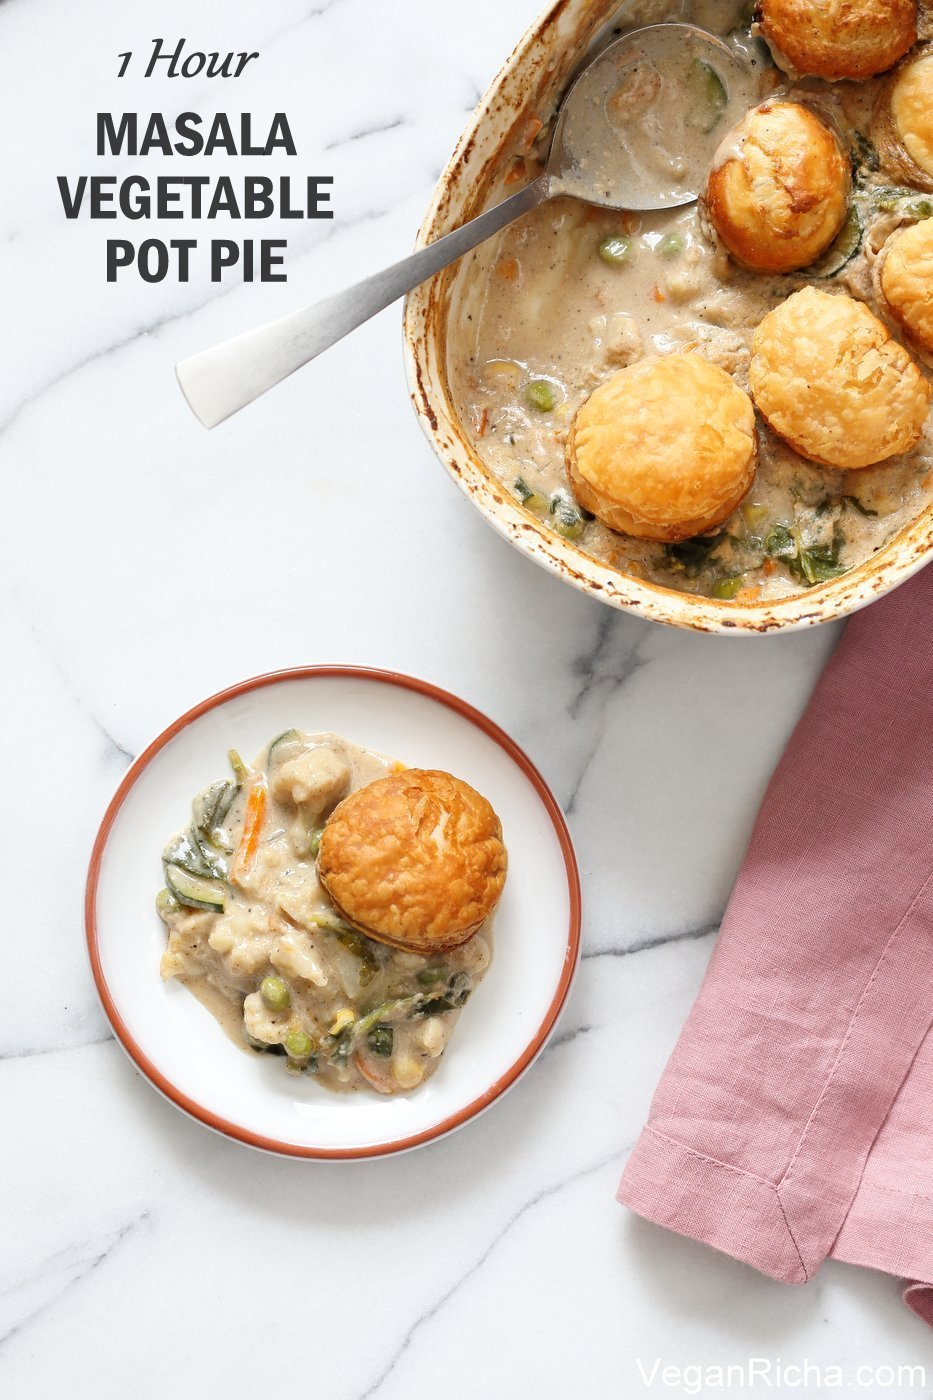 1 Hour Masala Vegetable Pot Pie. This Vegan Pot Pie is amped up with garam masala and spices. Use up seasonal veggies to make this vegetarian pot pie. Top with biscuits, puff pastry or serve as is with garlic bread or rice. Vegan Soy-free Recipe, Gluten-free option | veganricha.com